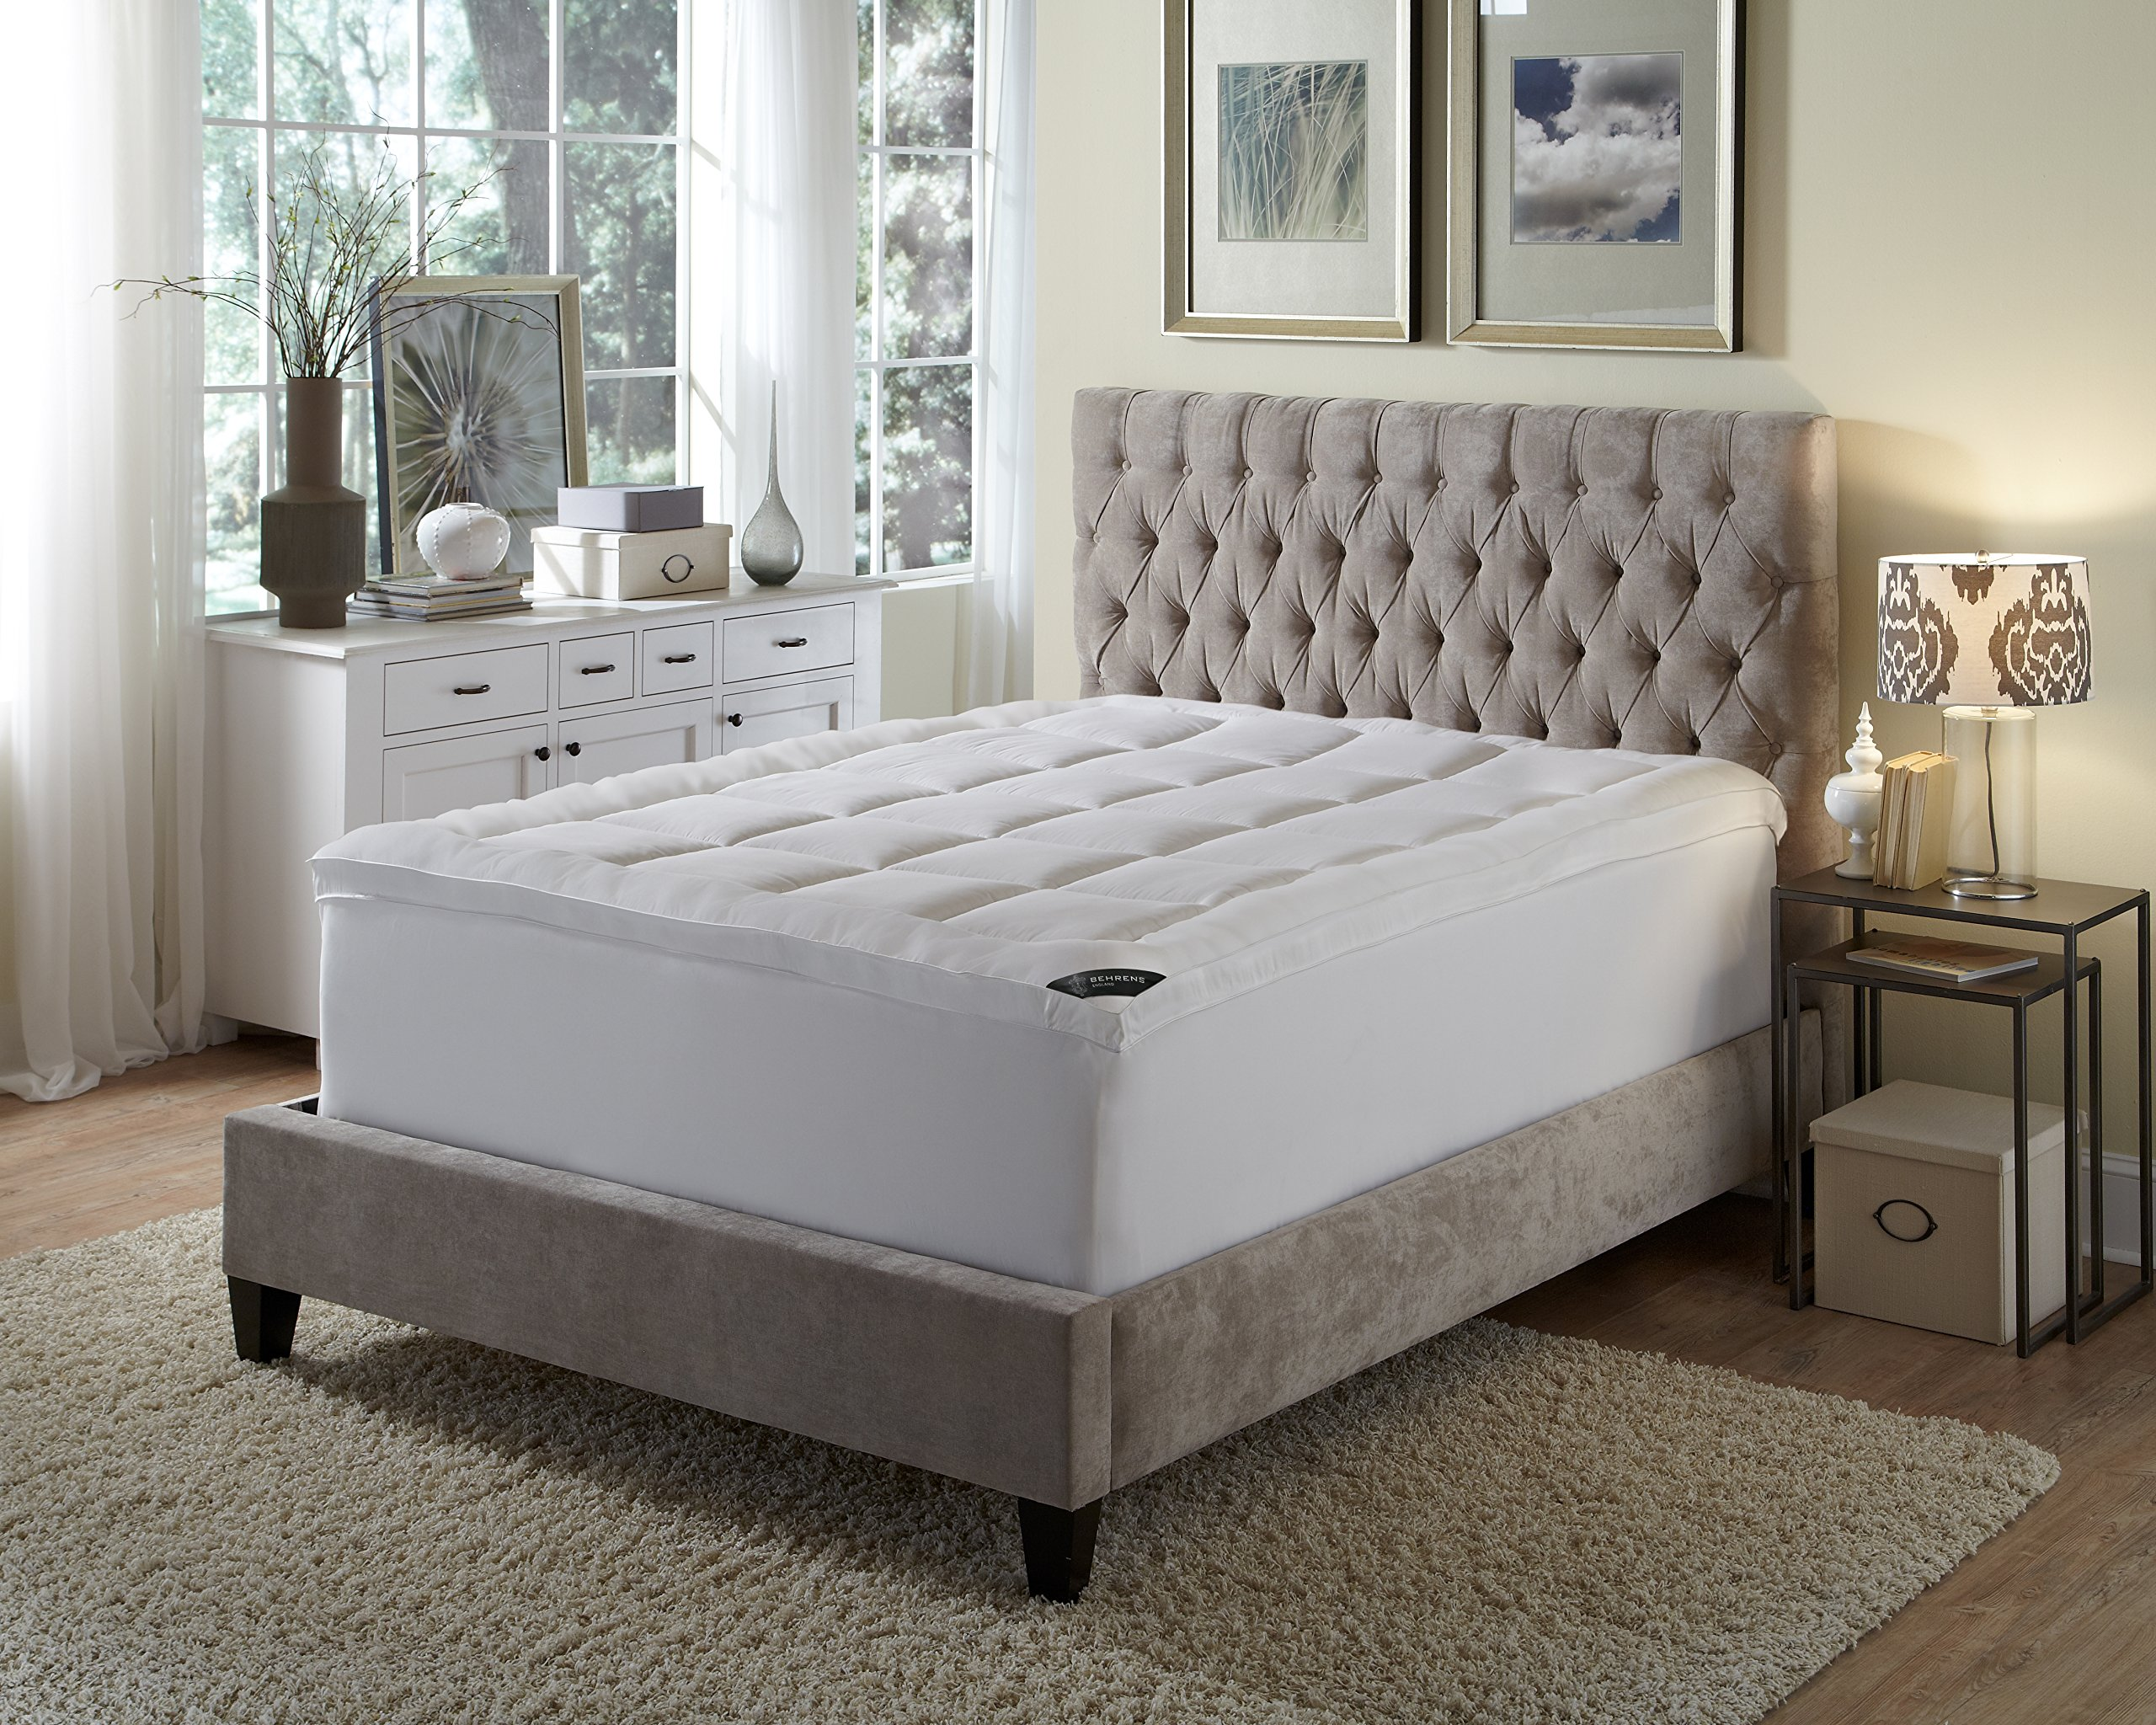 Behrens of England FB-003-7K European Hotel Pillow Top Fiber Feather Bed Alternative, 3 inch Topper with Skirt for Enhanced Comfort on Mattress, King, White